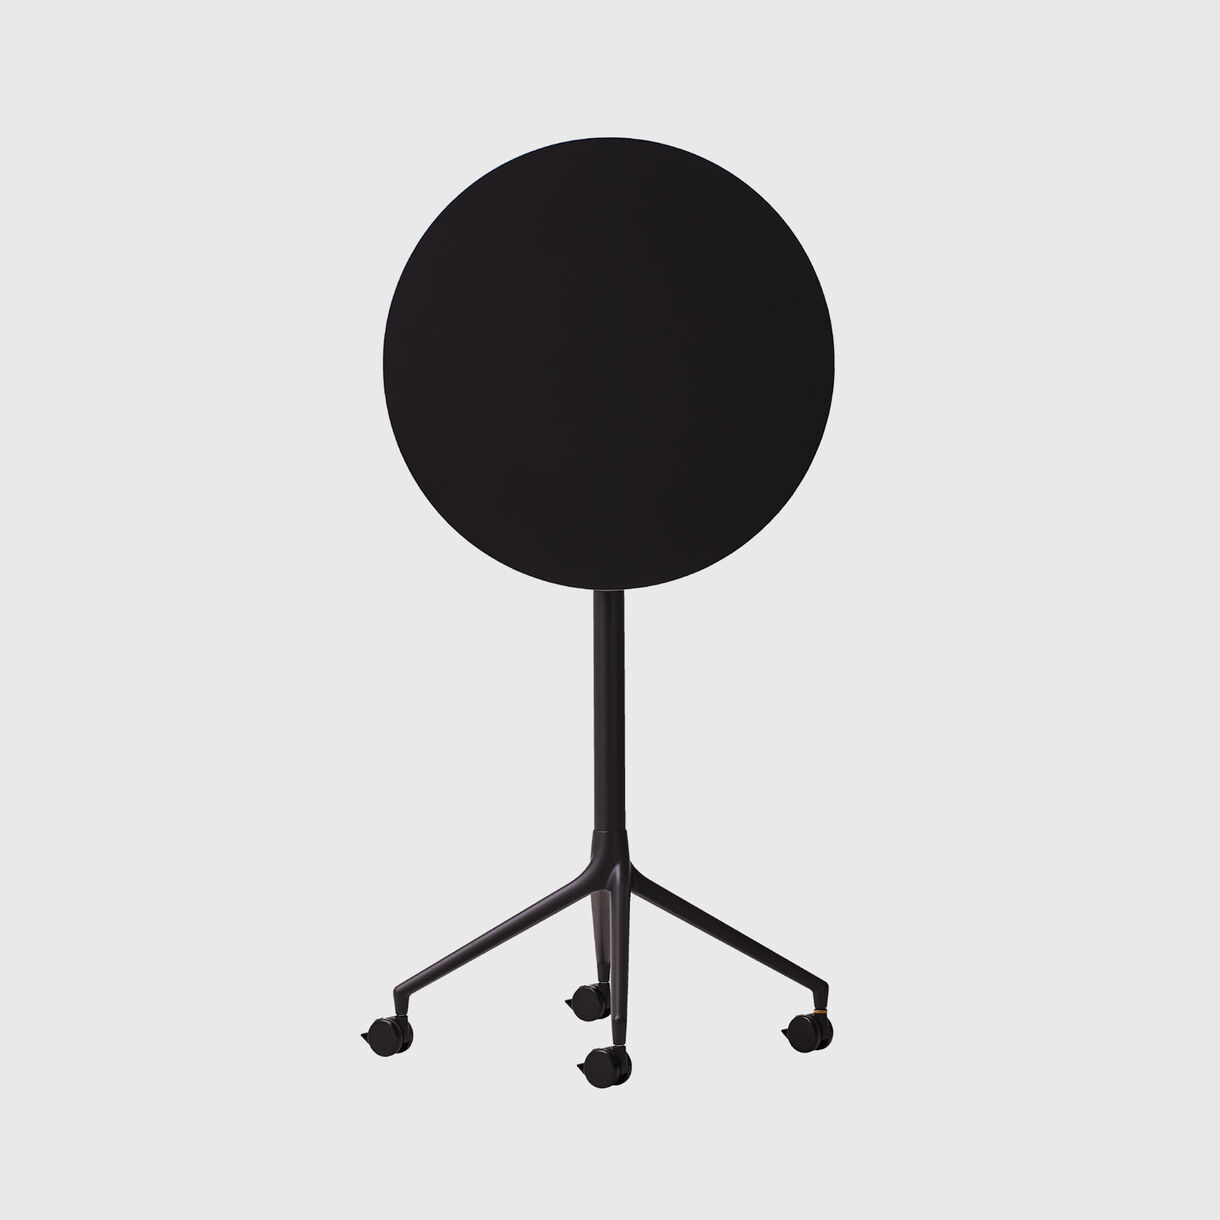 AS 500 Table, Round